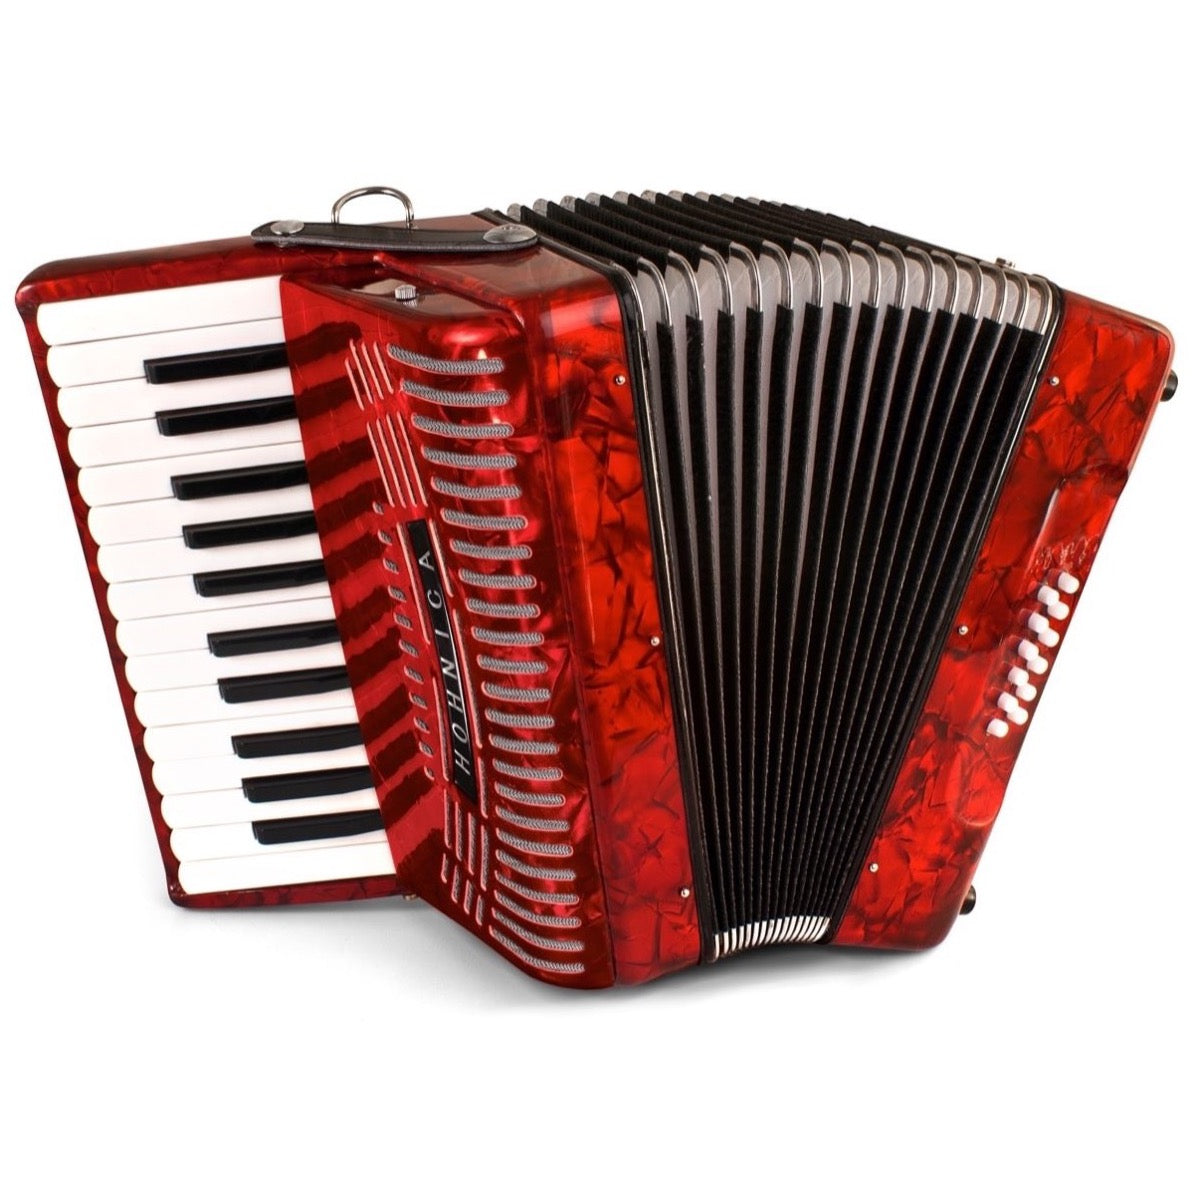 Hohner 1303-RED Piano 12 Bass Accordion, Pearl Red